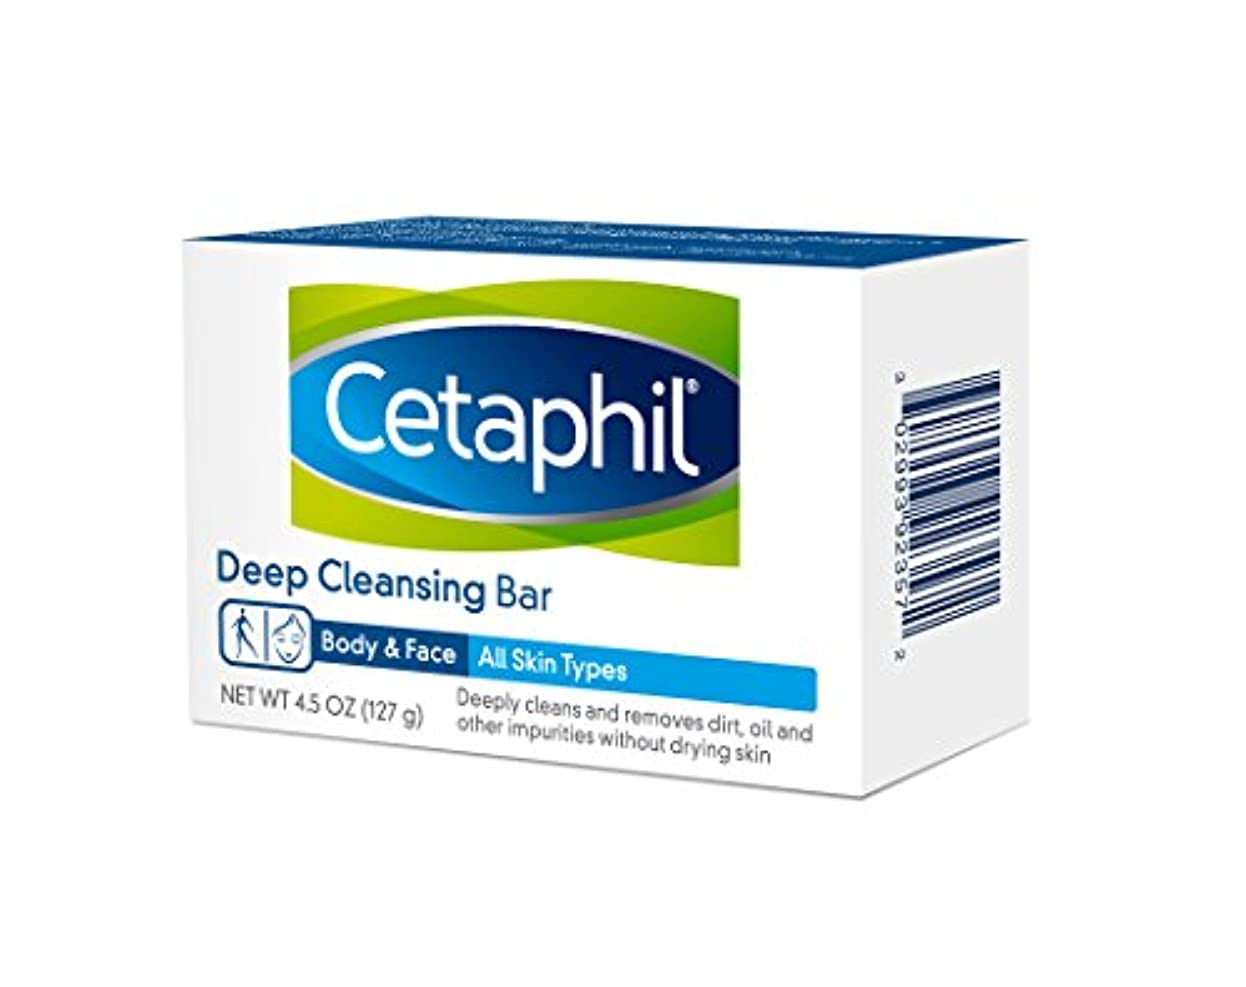 技術収入実験Cetaphil Deep Cleansing Face Body Bar for All Skin Types 127g×6個セット 並行輸入品